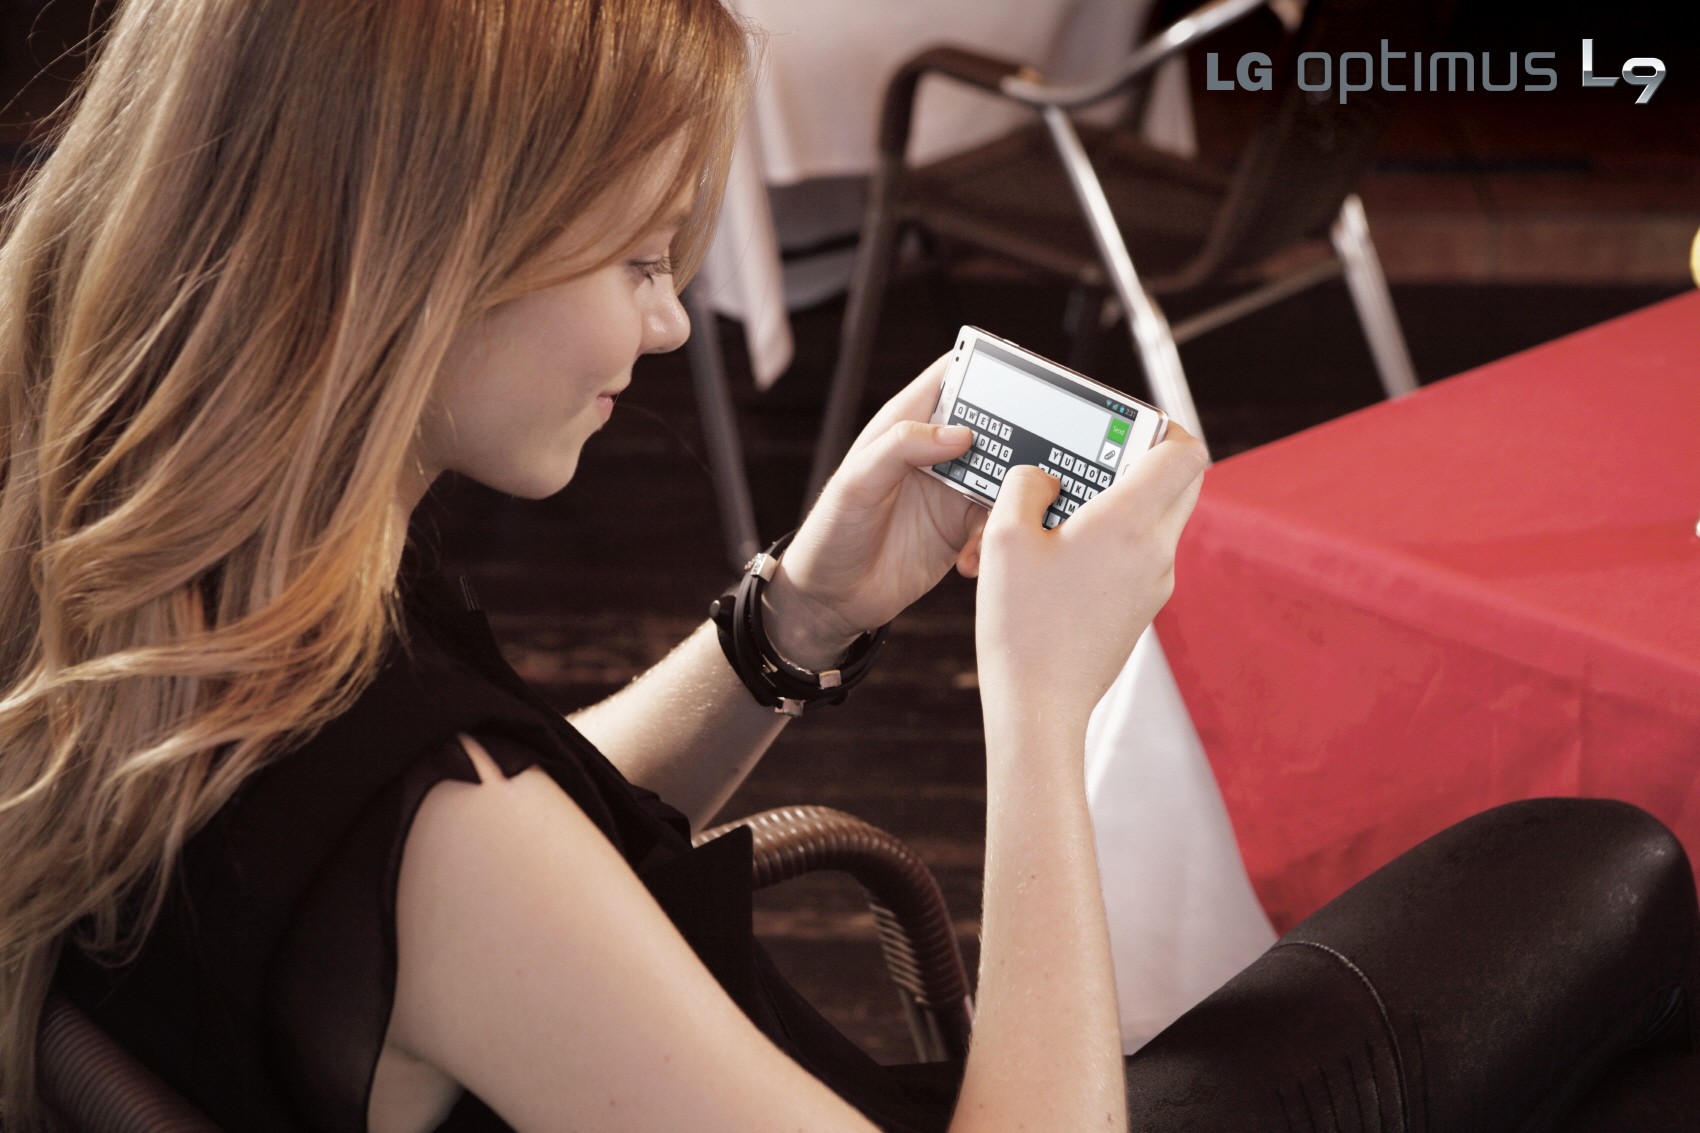 A woman is typing a text message with LG Optimus L9